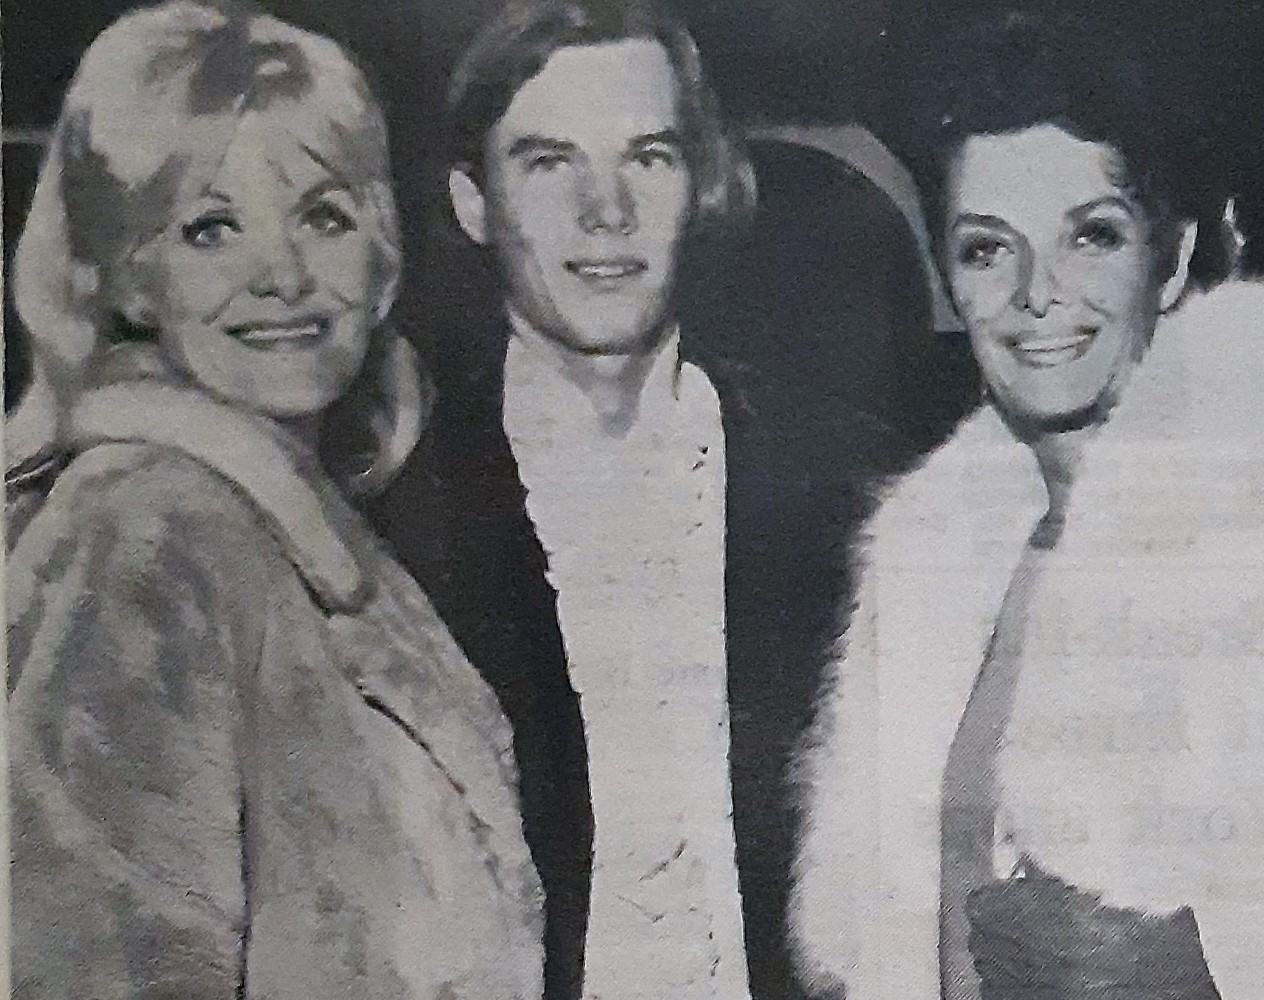 A front page picture of Jane Russell and co-star Beryl Davis in York on October 20, 1968